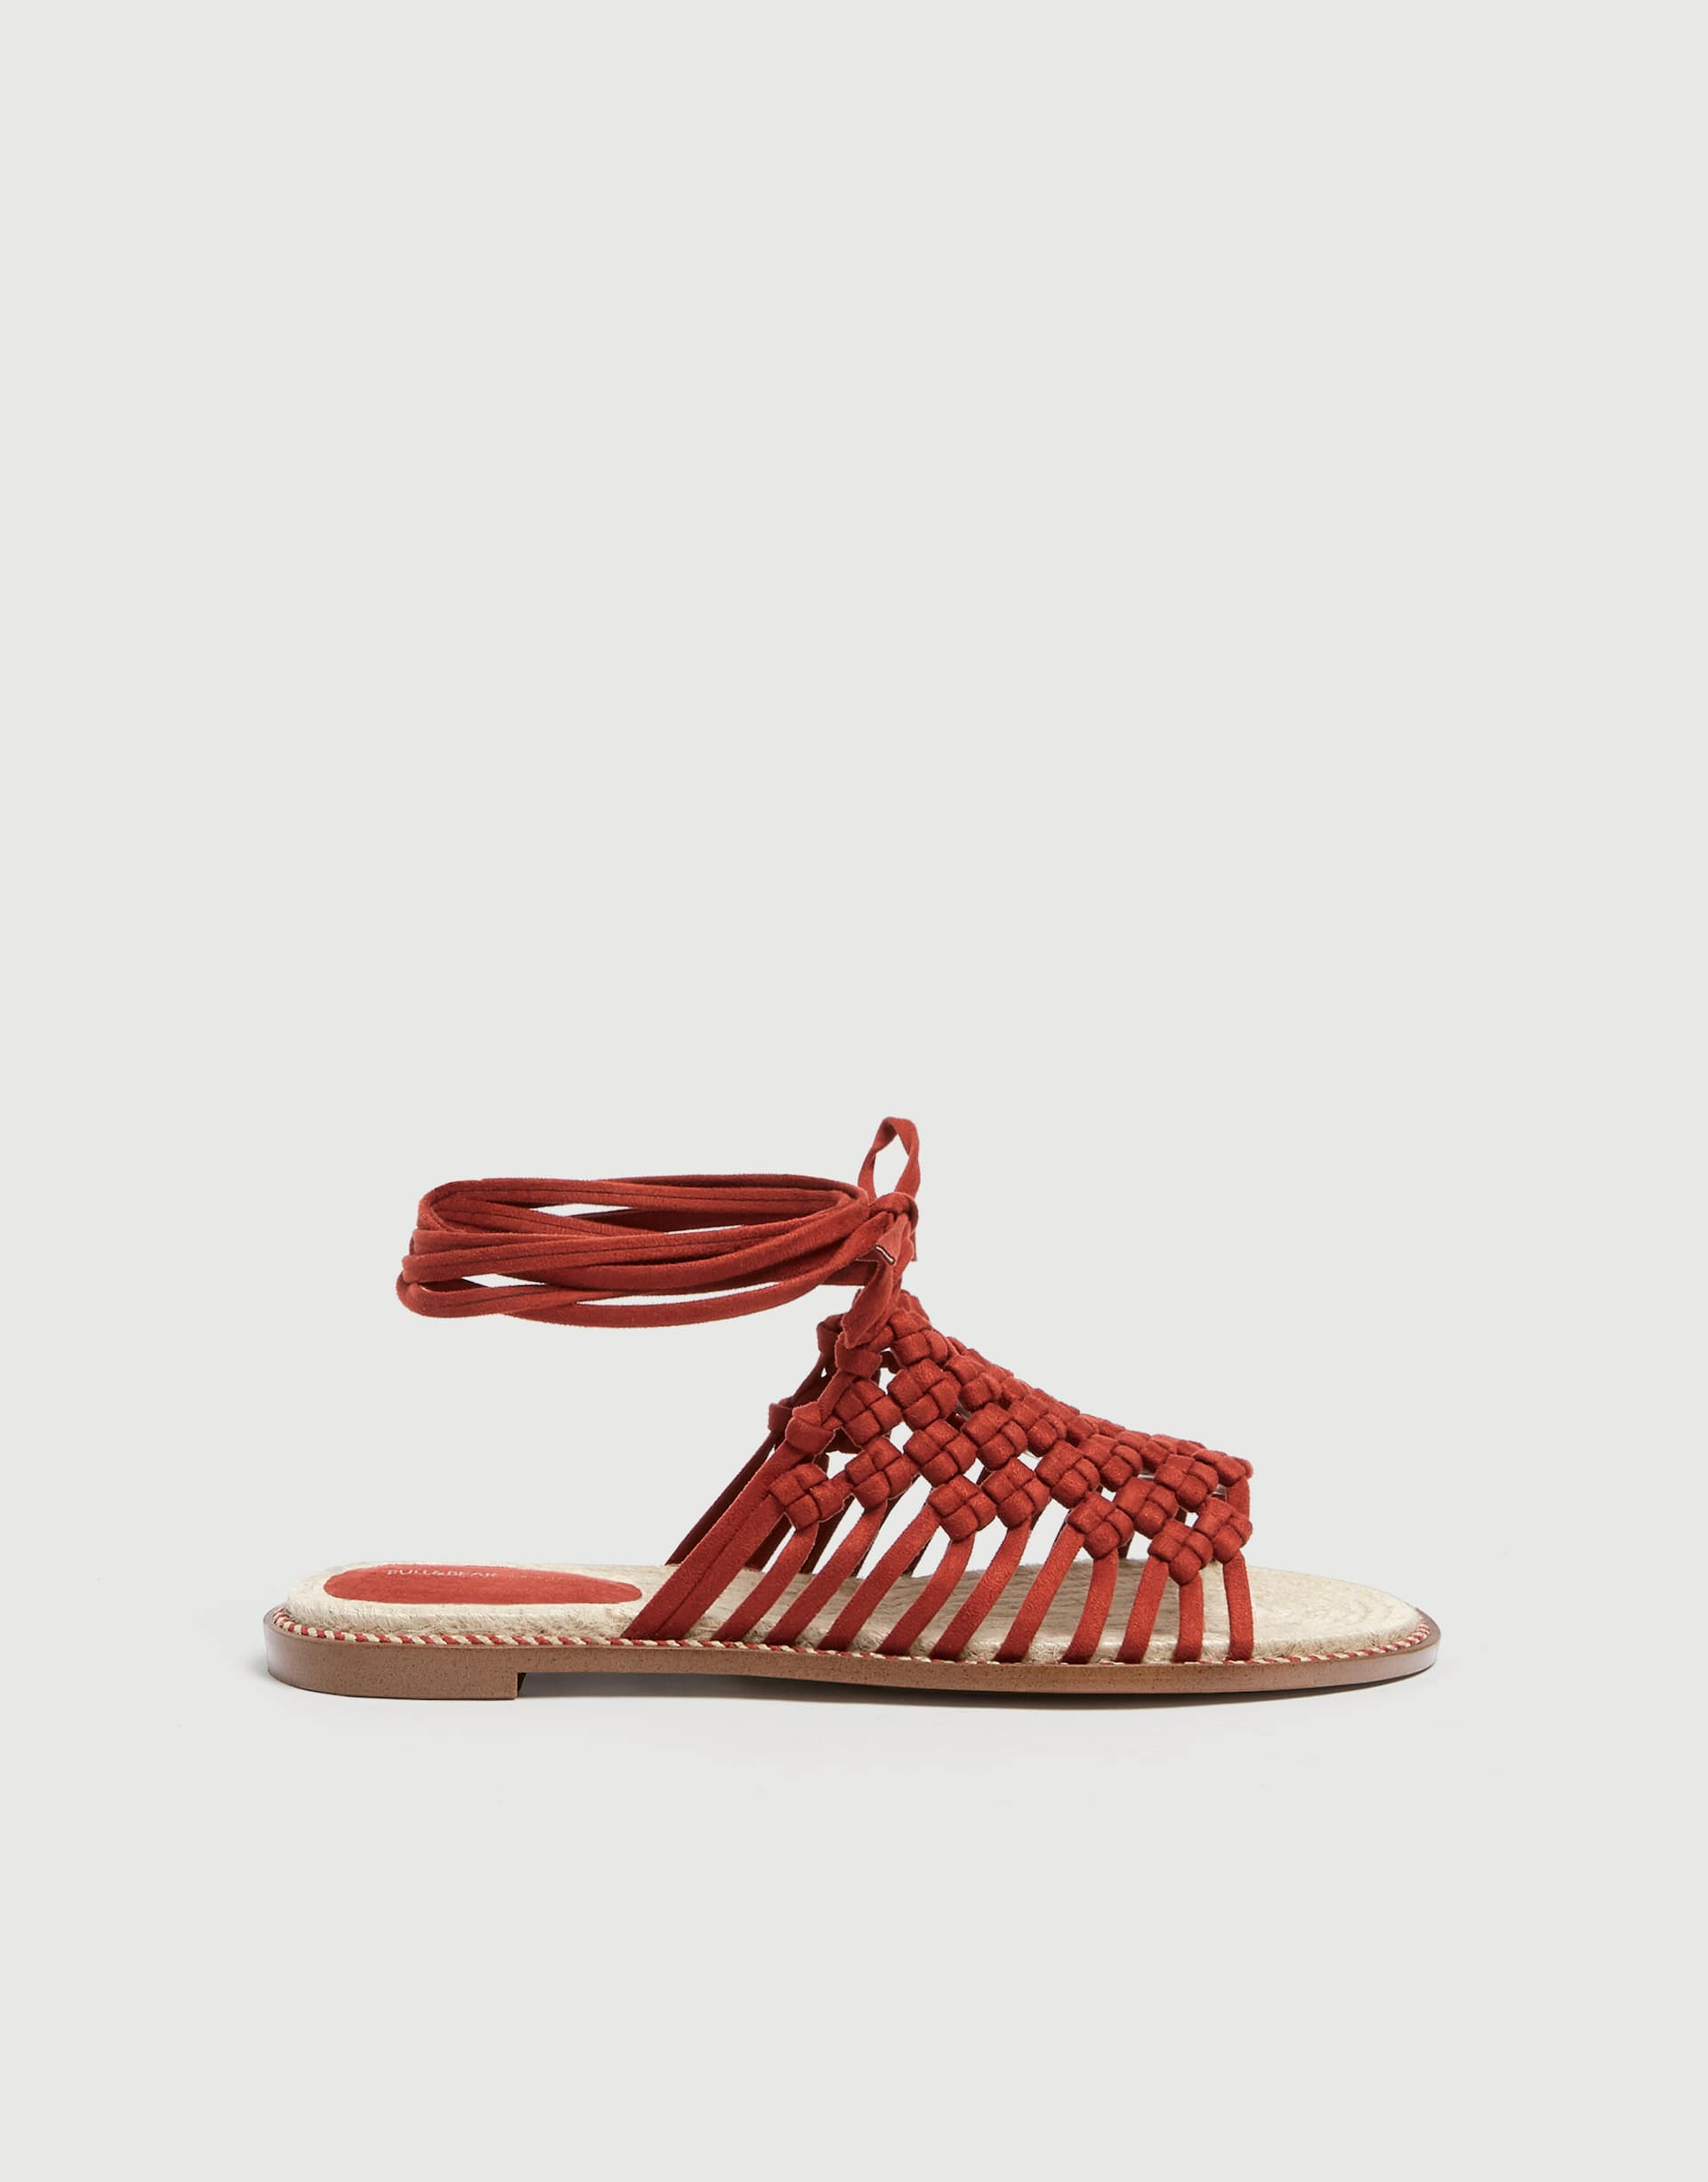 super quality luxuriant in design unparalleled Braided coral sandals